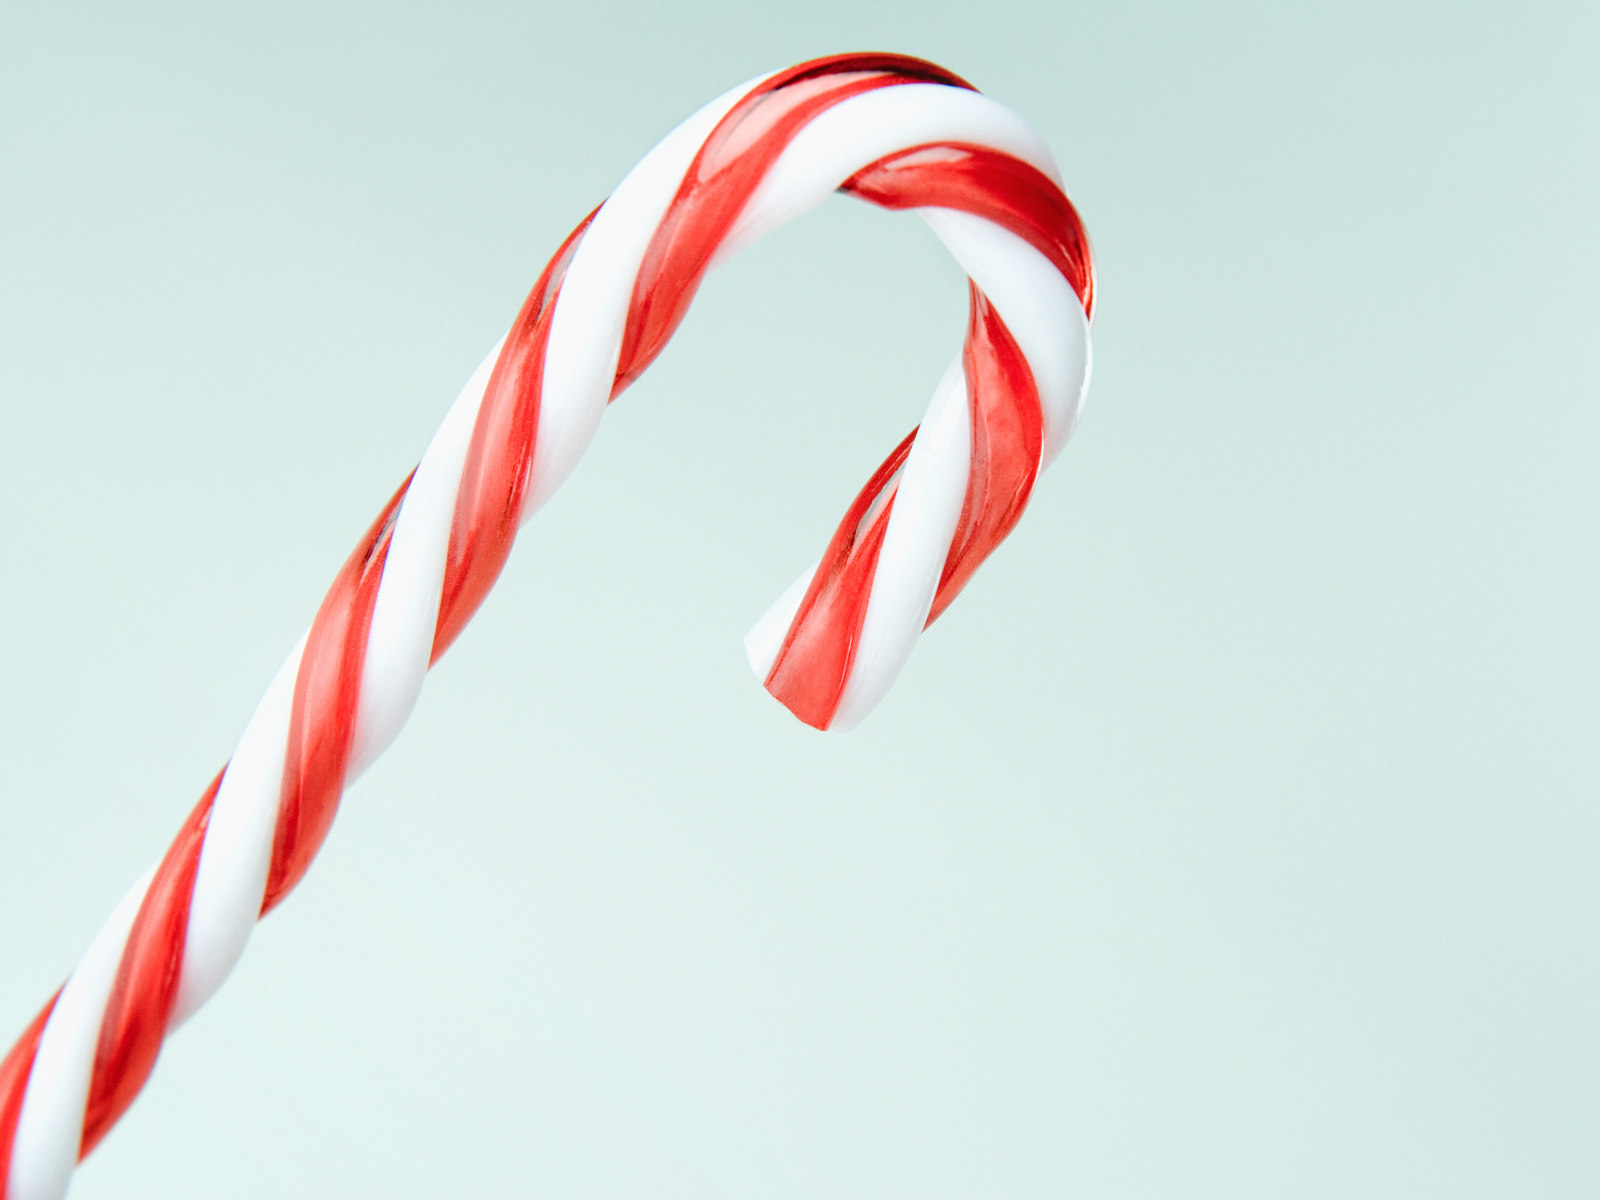 christmas candy cane backgrounds for powerpoint